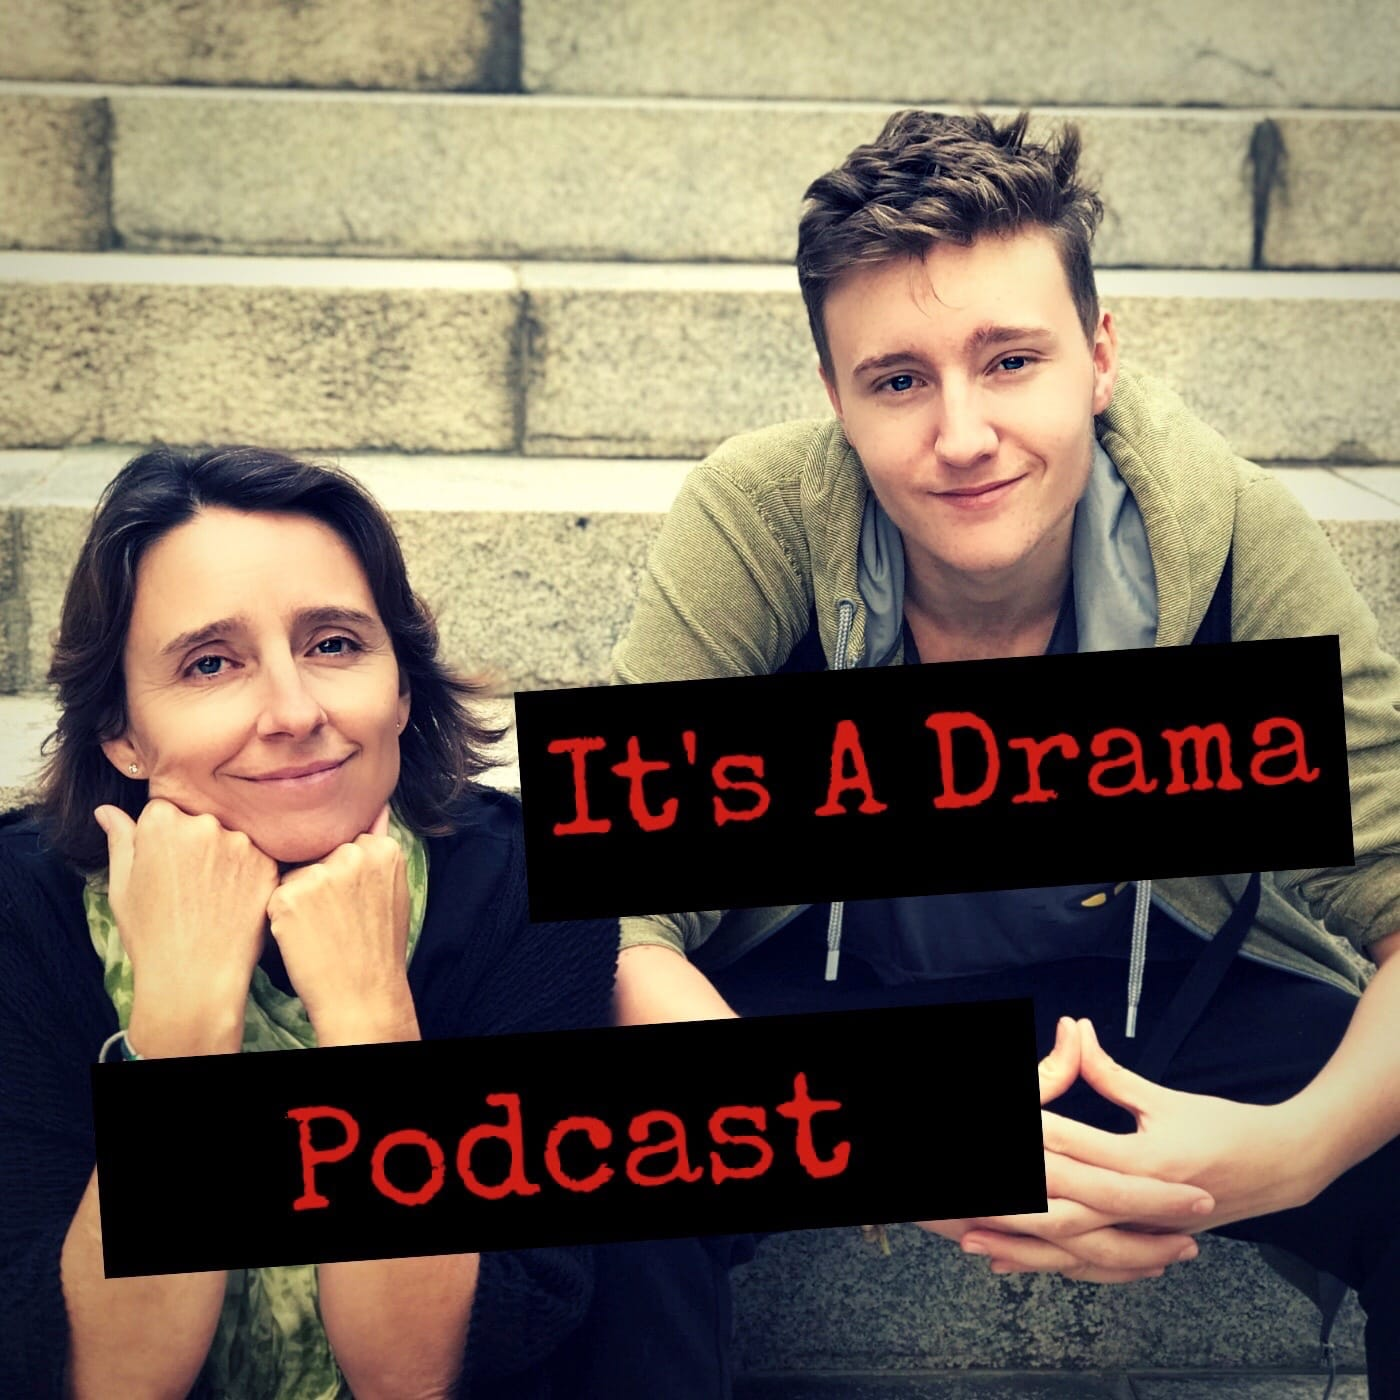 A parenting podcast with a mother and her teenage kids talking about issues